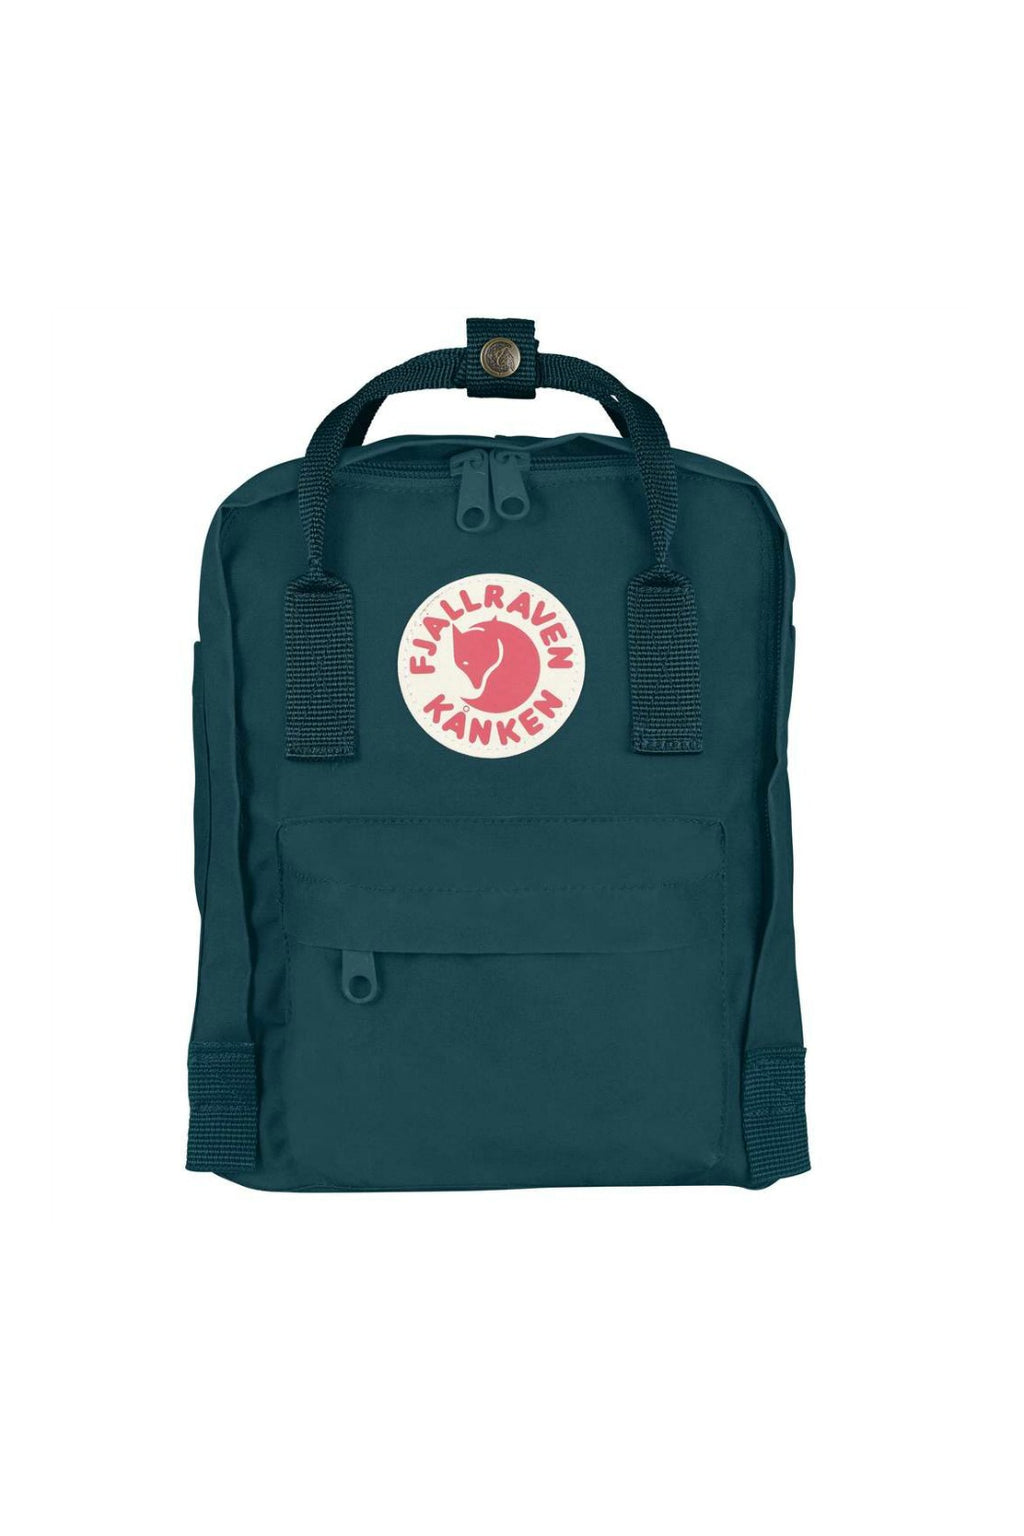 Fjällräven Kånken Mini Backpack - Glacier Green